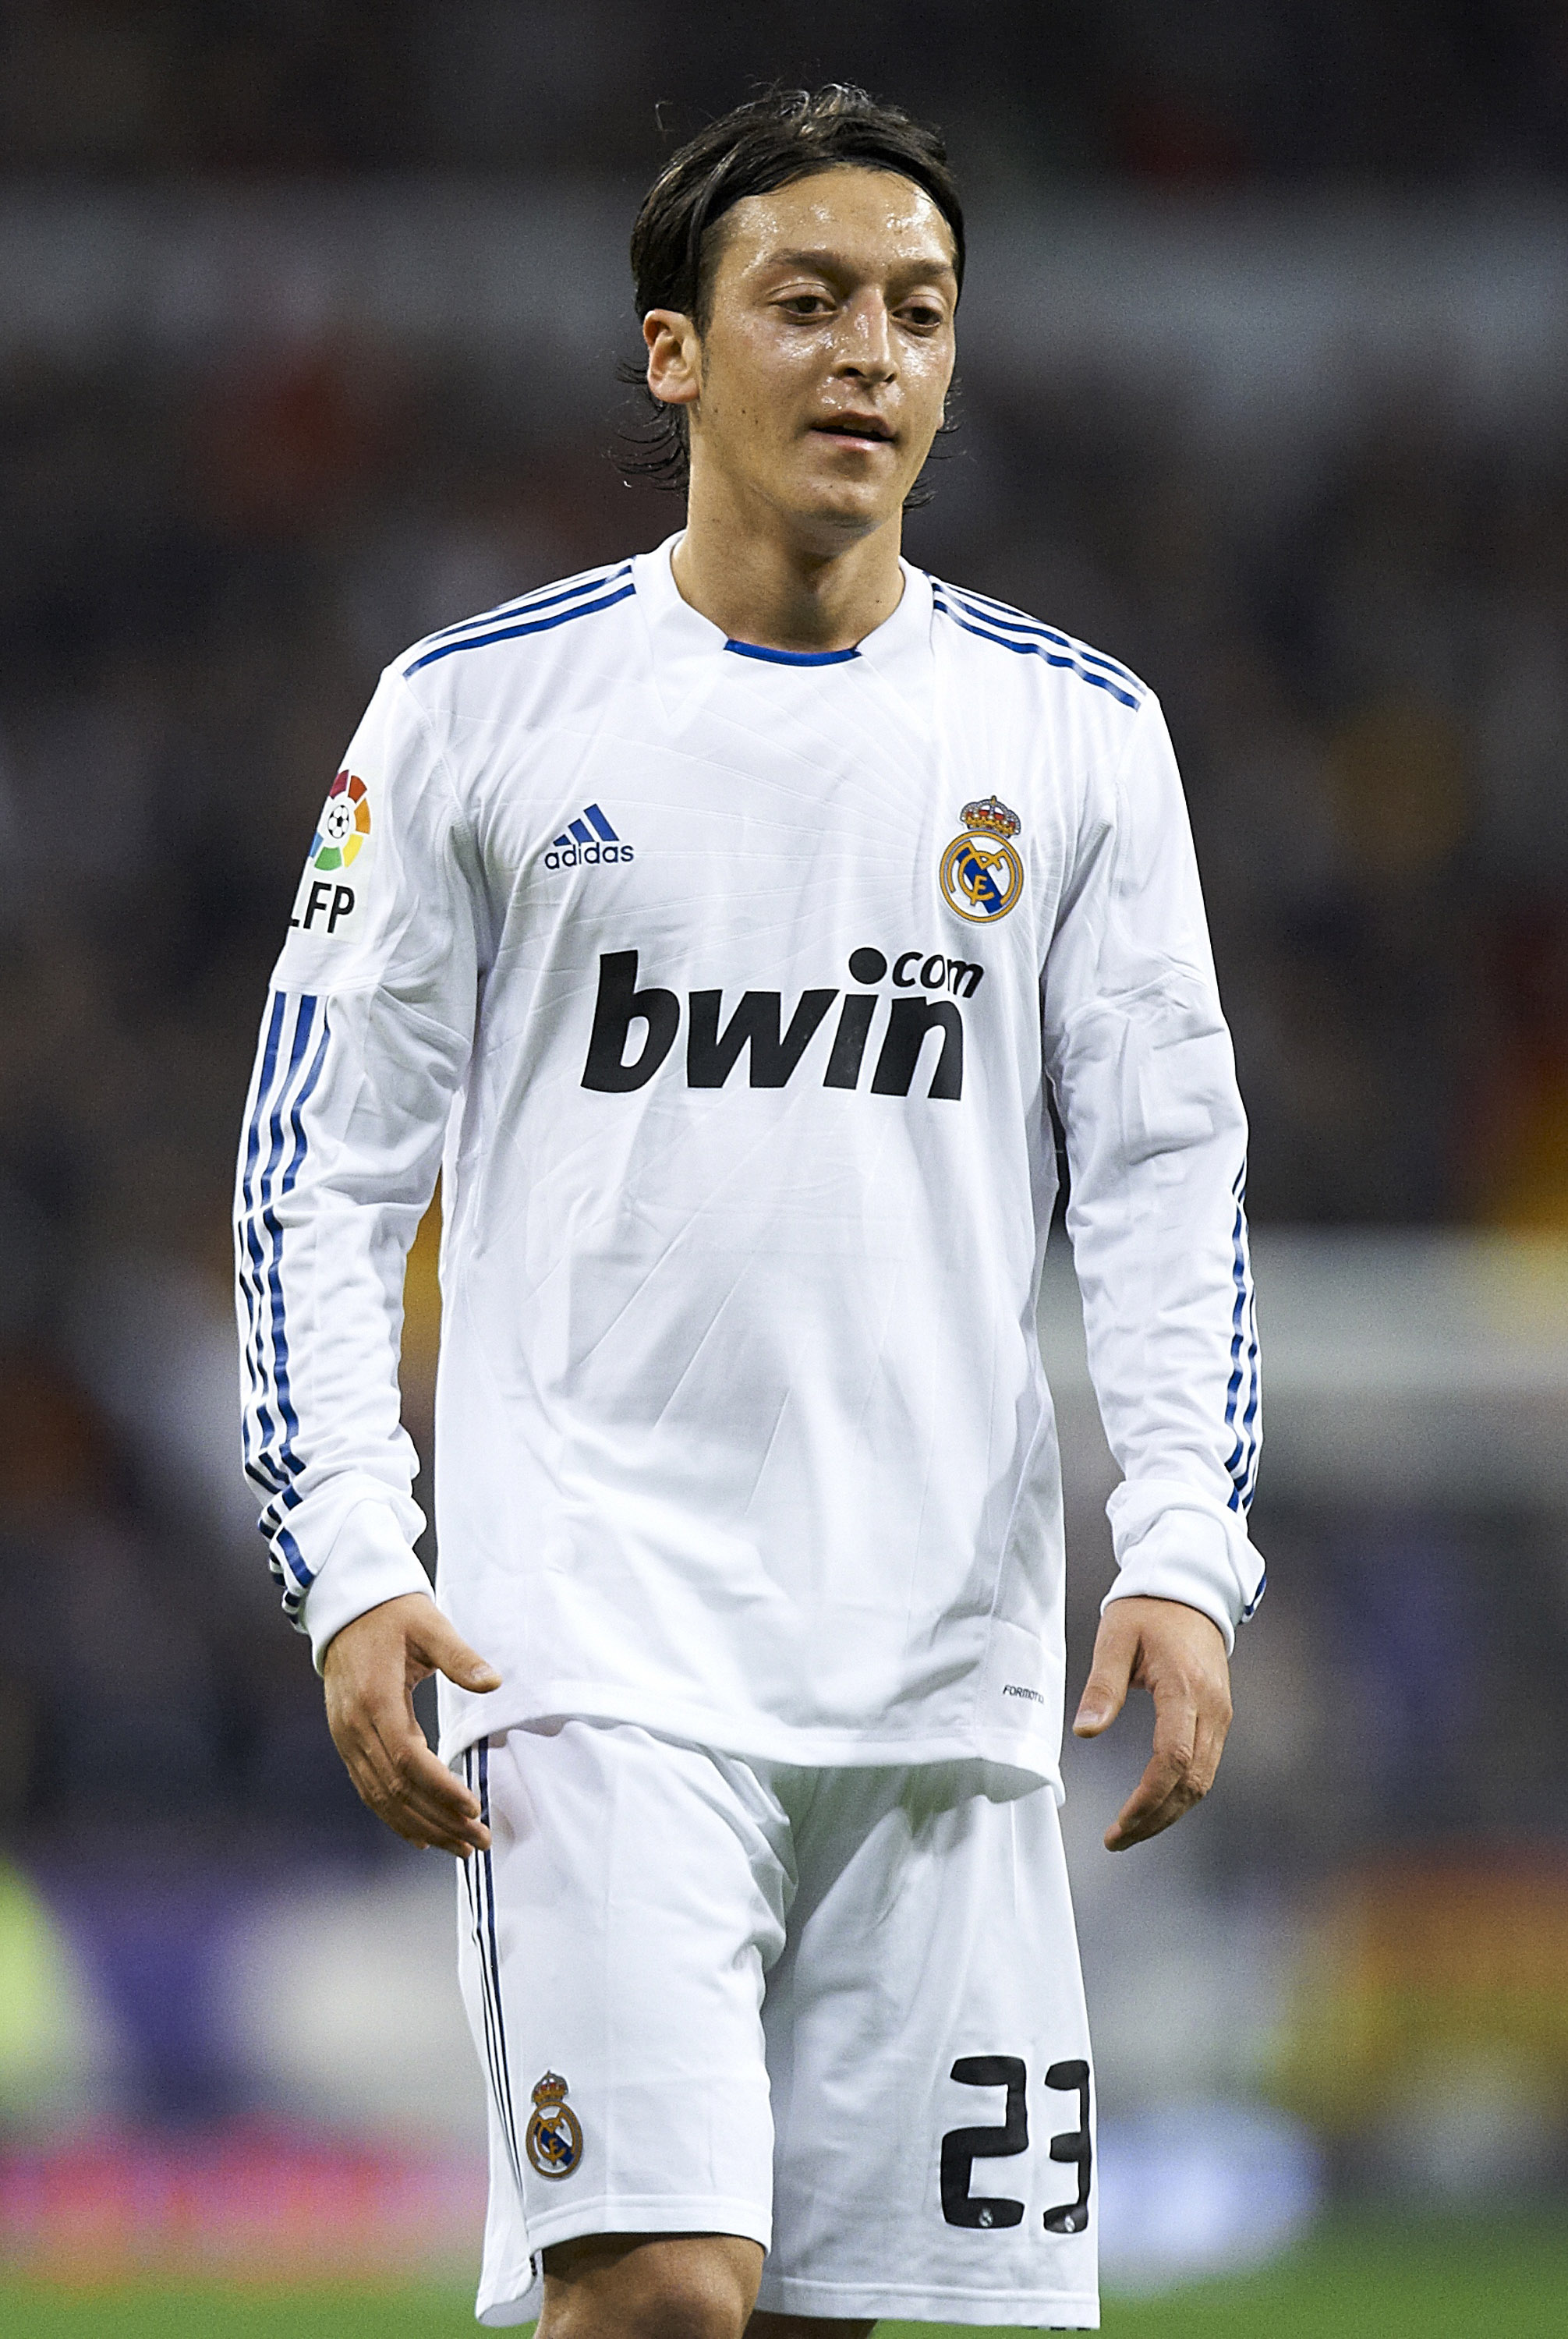 MADRID, SPAIN - NOVEMBER 20:  Mesut Ozil of Real Madrid looks on during the la liga match between Real Madrid and Athletic Bilbao at Estadio Santiago Bernabeu on November 20, 2010 in Madrid, Spain. Real Madrid won 5-1.  (Photo by Manuel Queimadelos Alonso